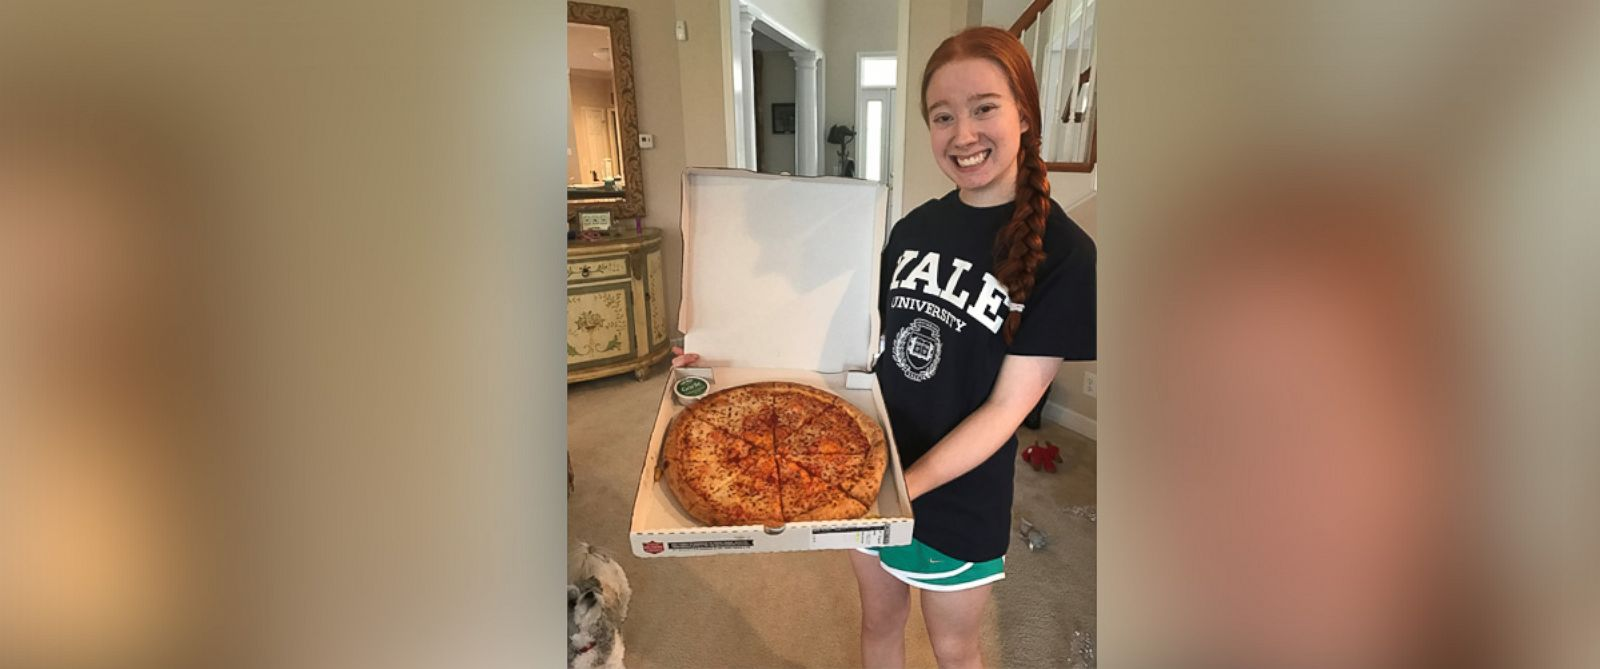 PHOTO: Carolina Williams, of Brentwood, Tennessee, was accepted to Yale University after writing an essay about her love for Papa Johns pizza.